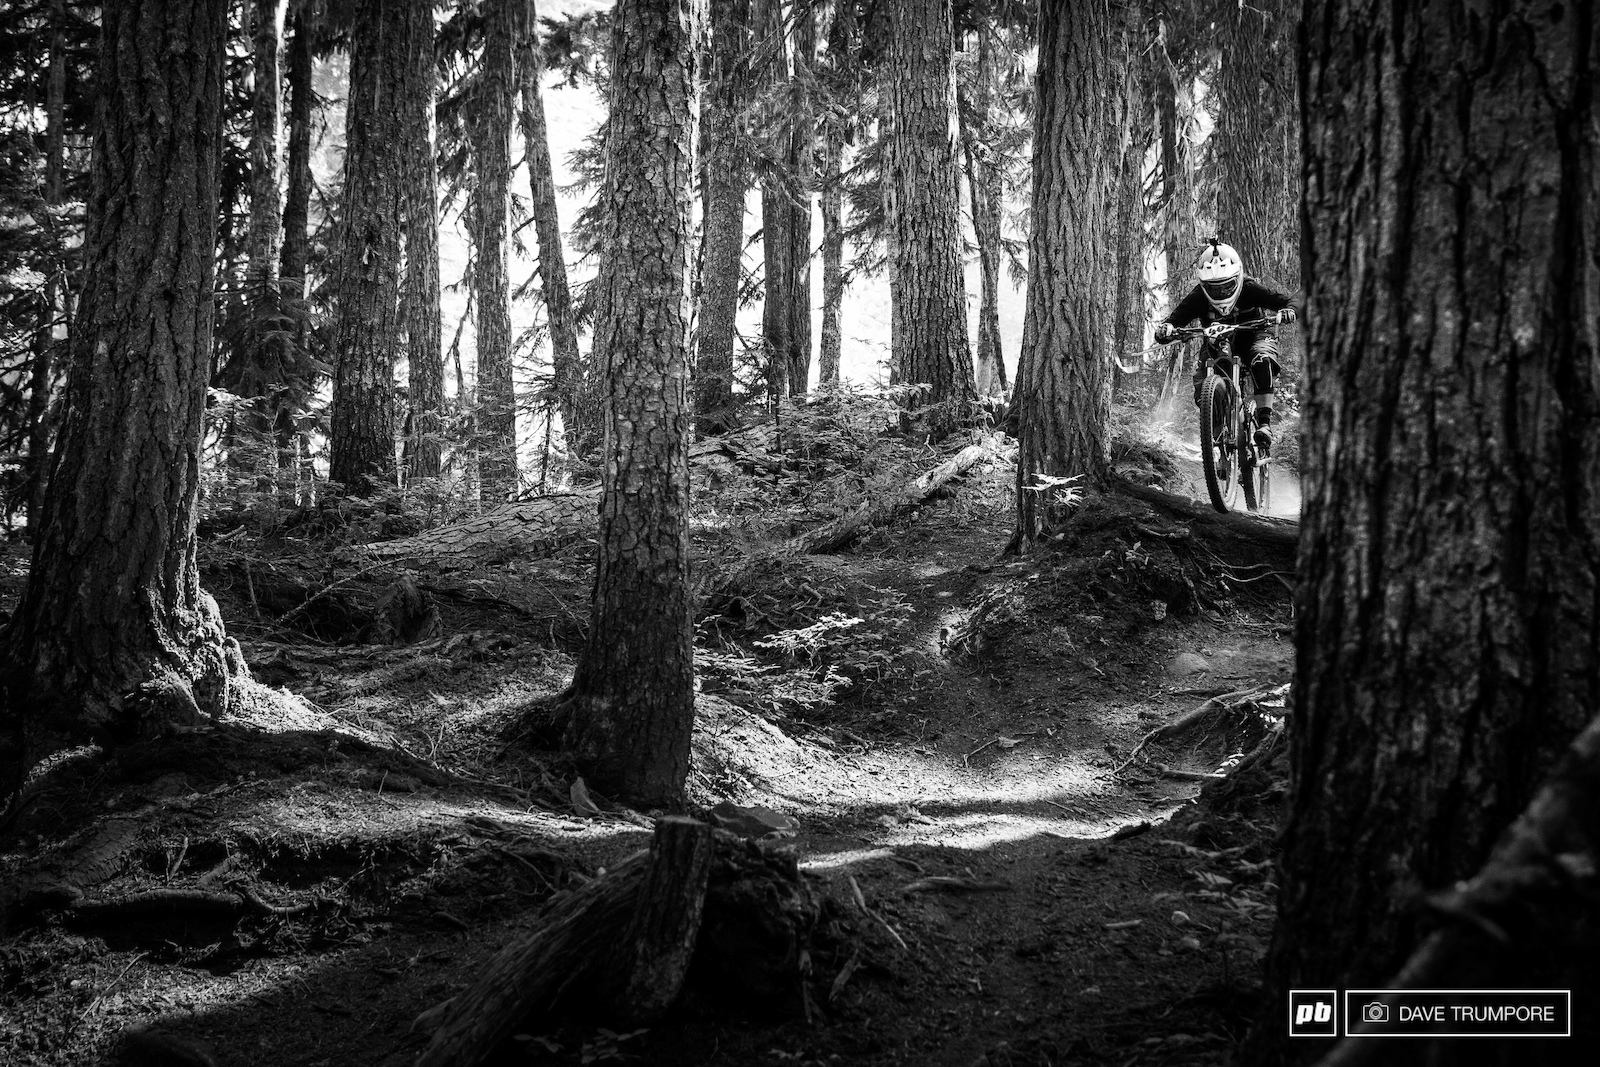 Noga Korem floats through the steep loam on the freshly rebuilt classic Ride Don t Slide.